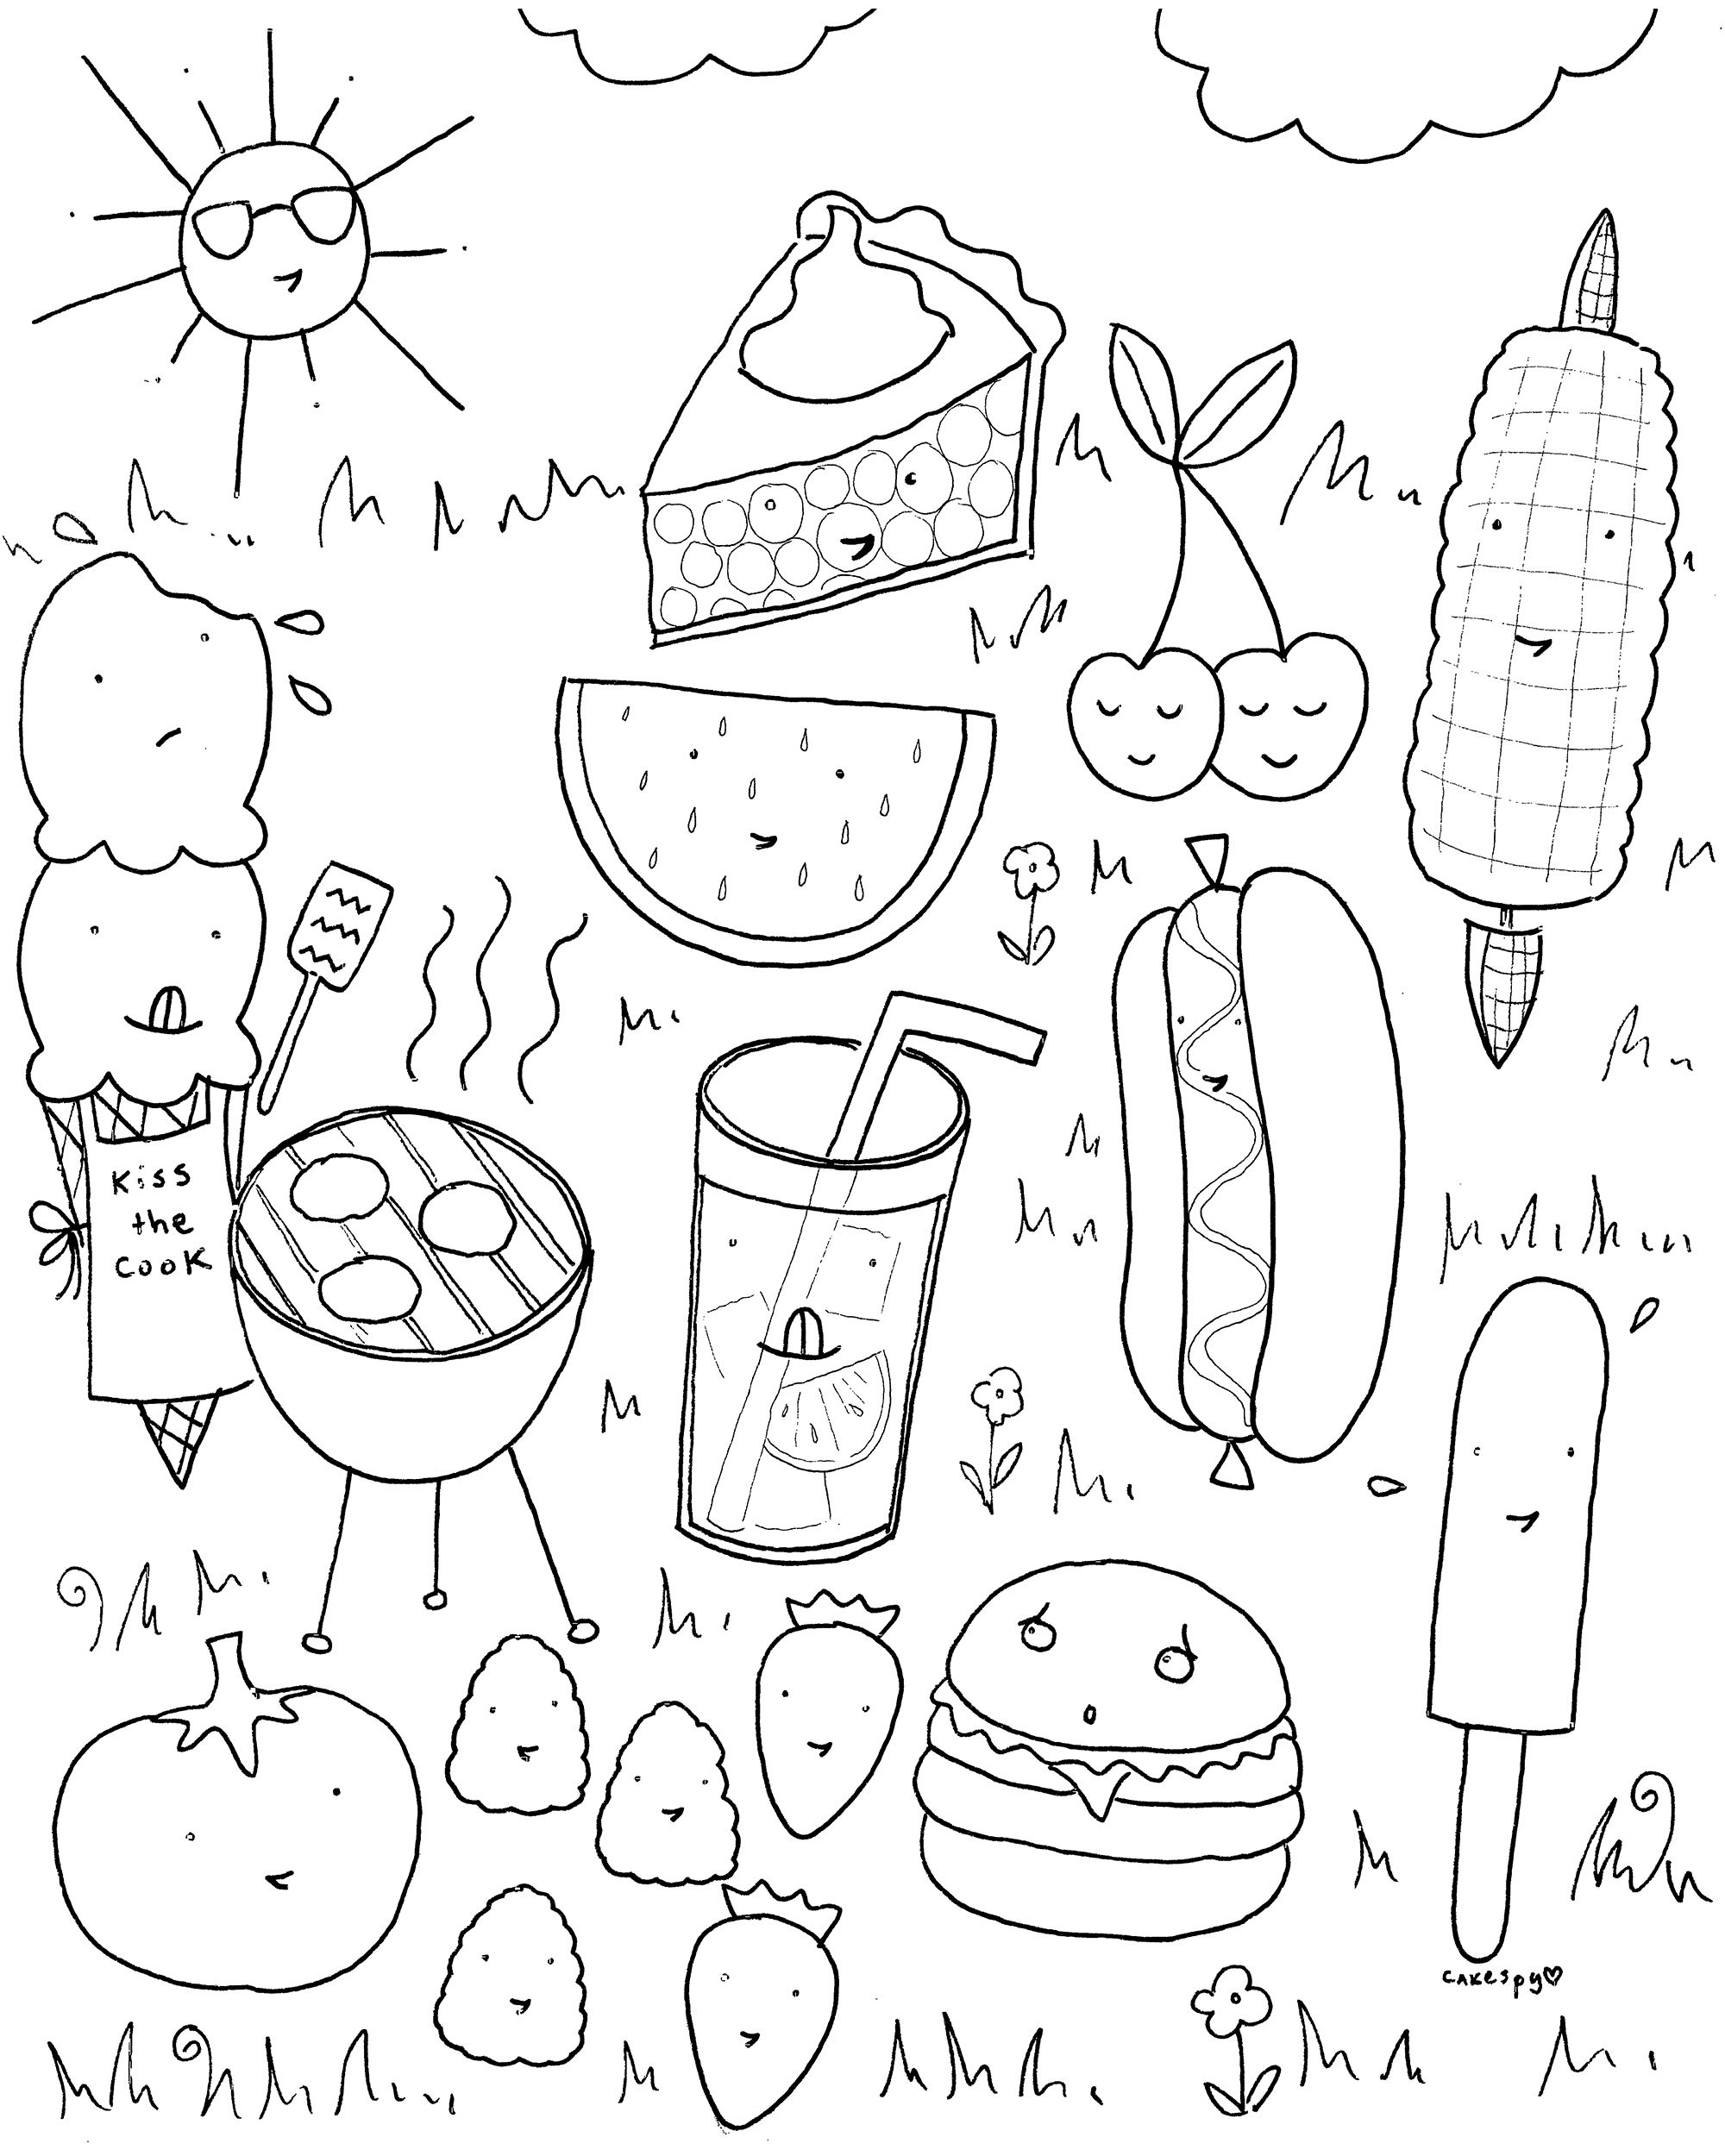 free downloadable summer fun coloring book pages - Fun Colouring Sheets